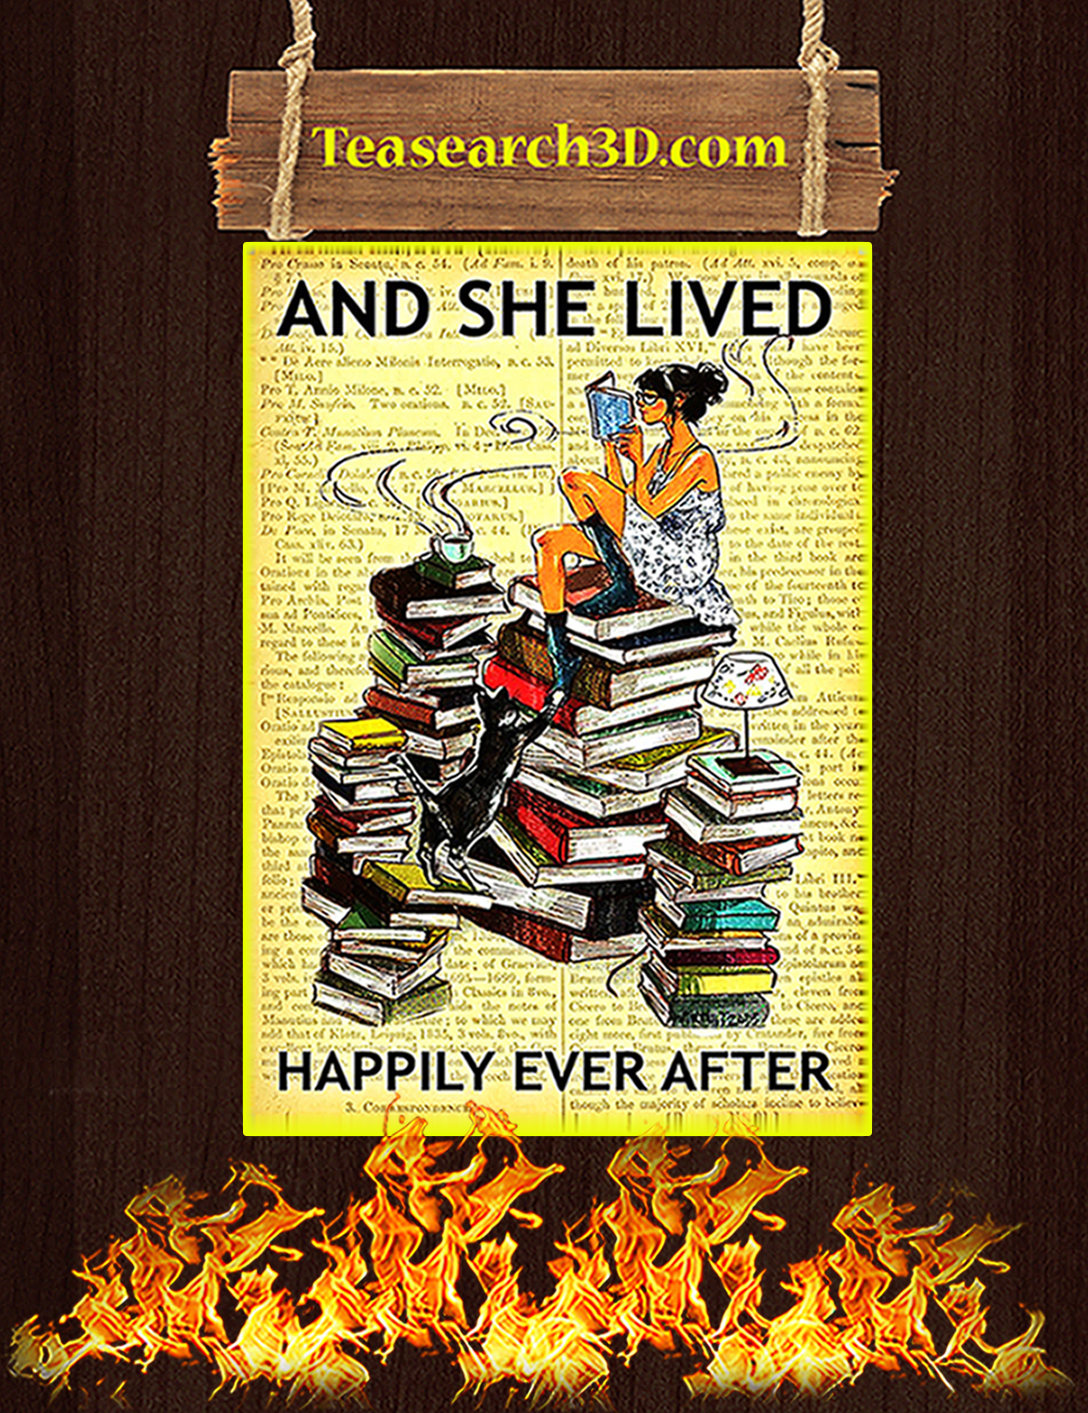 Book And she lived happily ever after poster A2